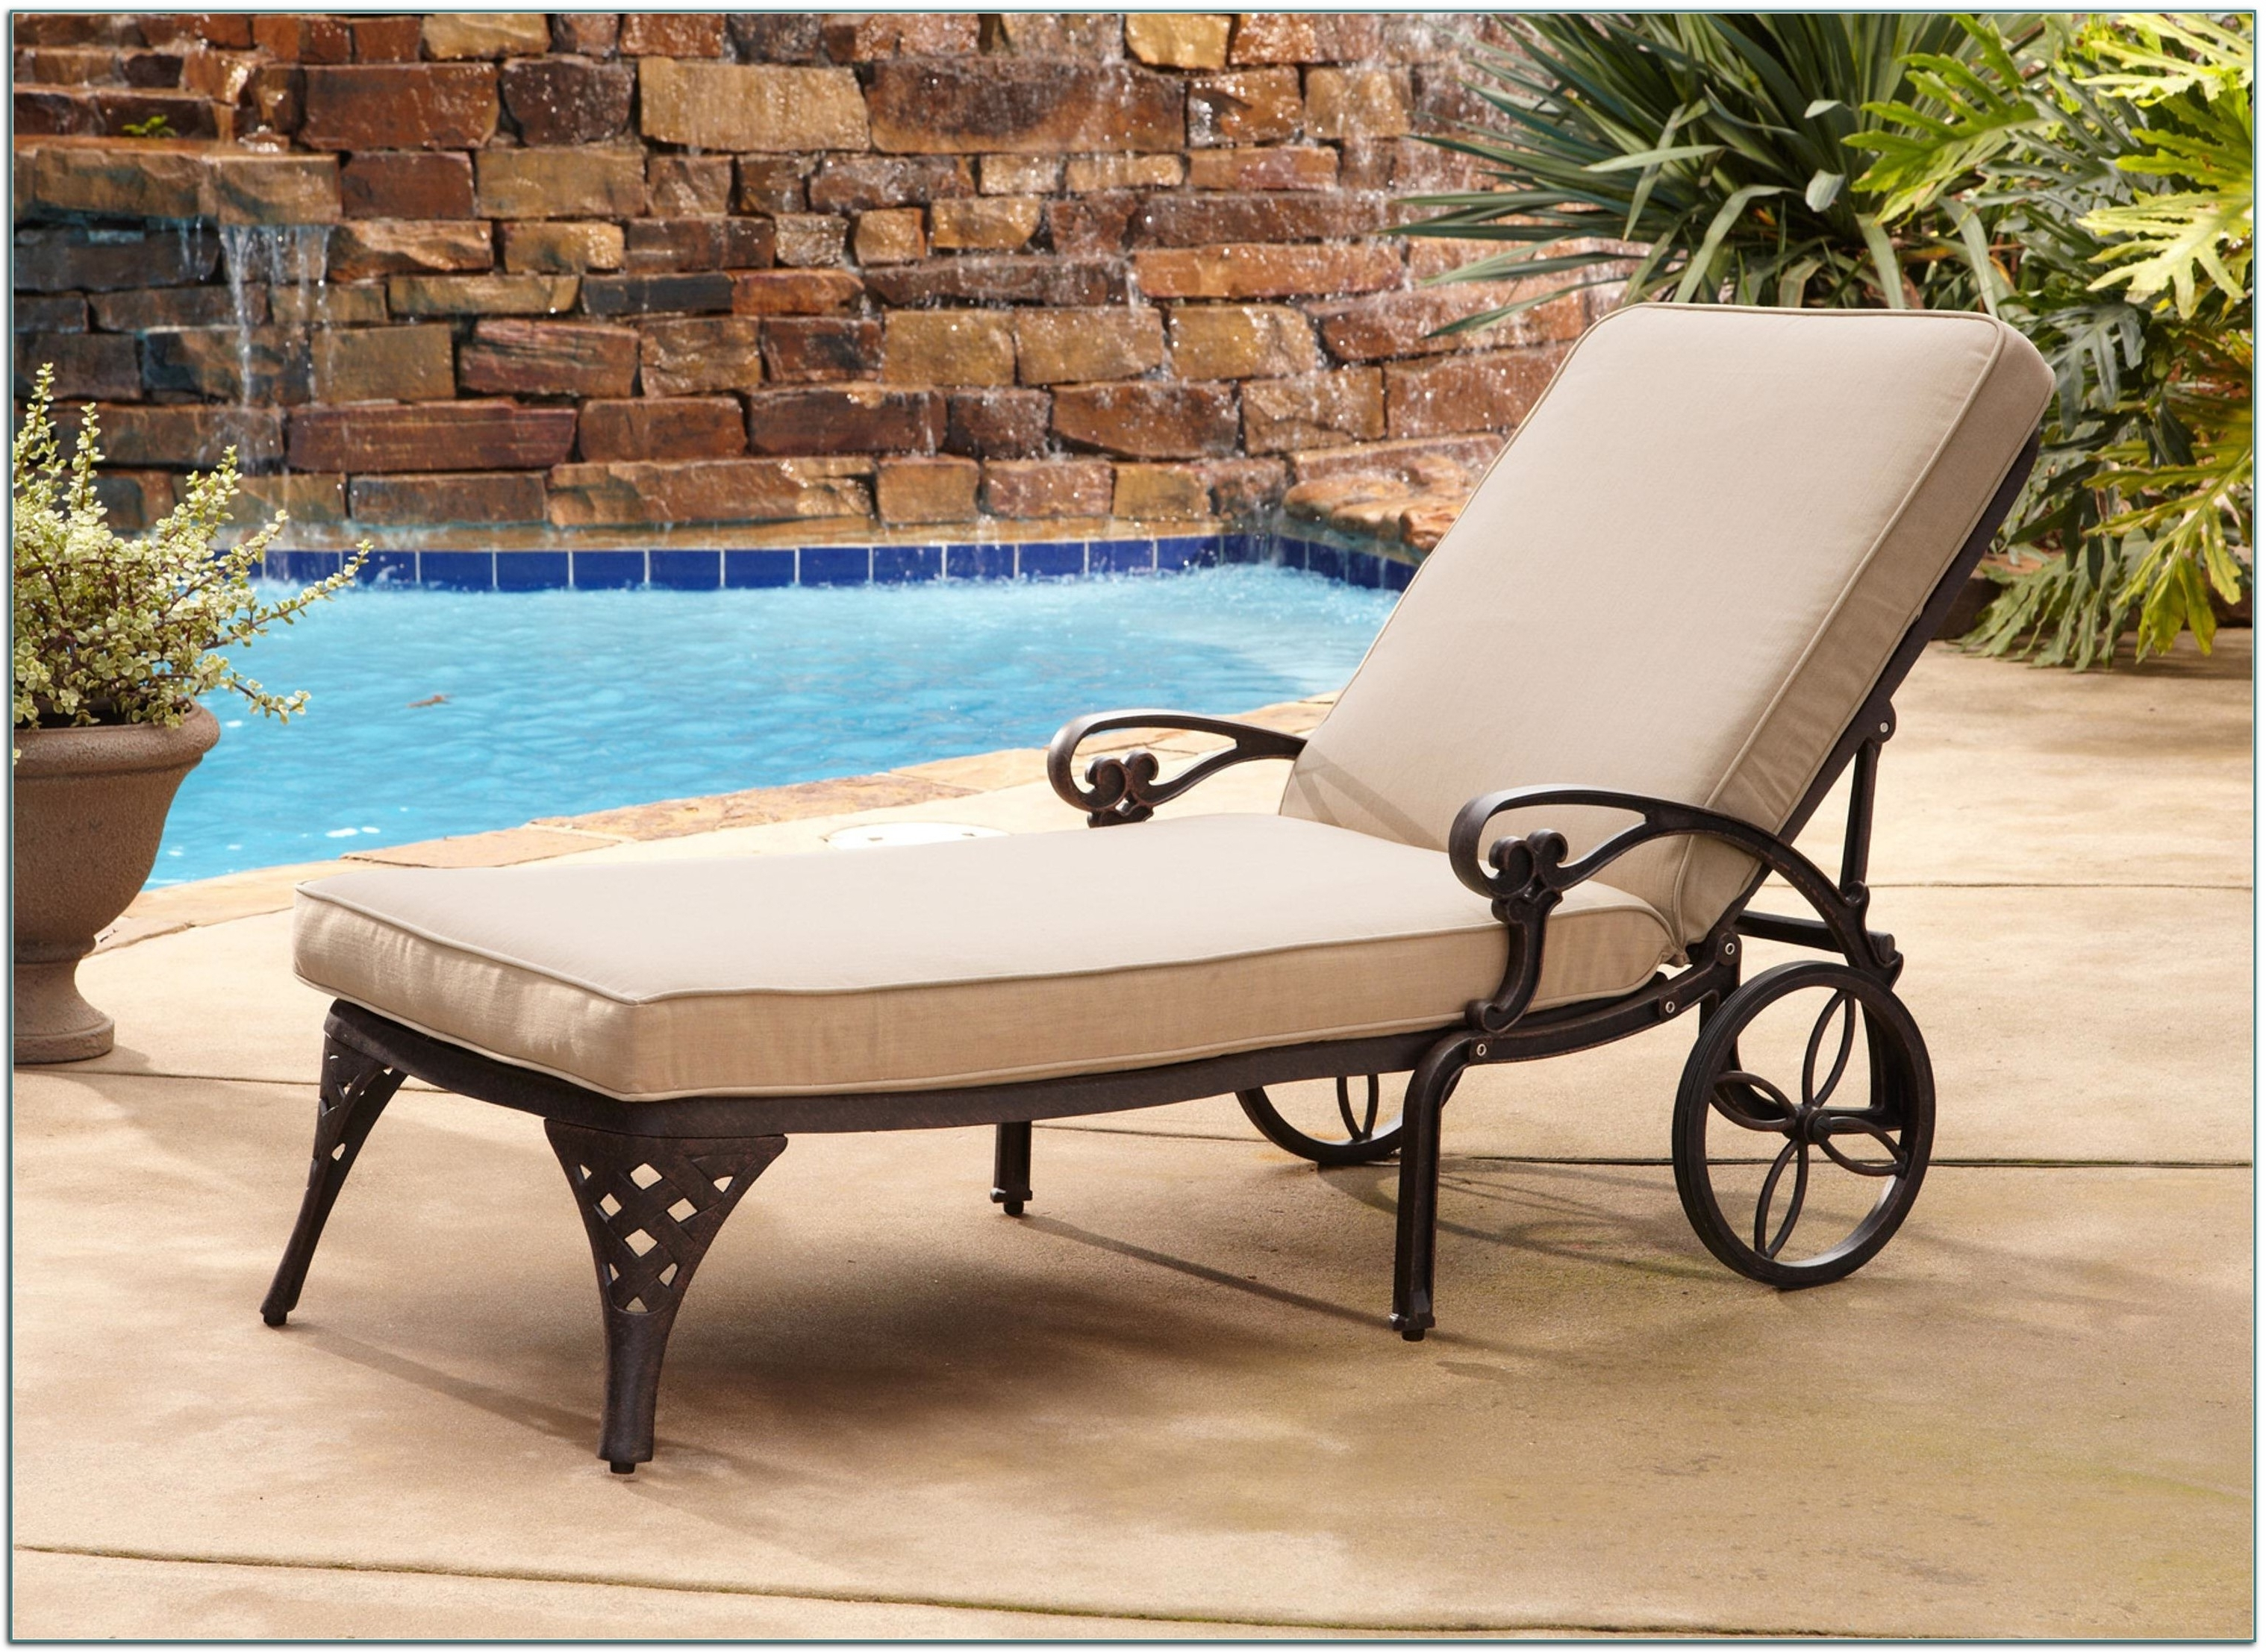 Best And Newest Chaise Lounge Chairs Outdoor Pool • Lounge Chairs Ideas Within Heavy Duty Outdoor Chaise Lounge Chairs (View 5 of 15)